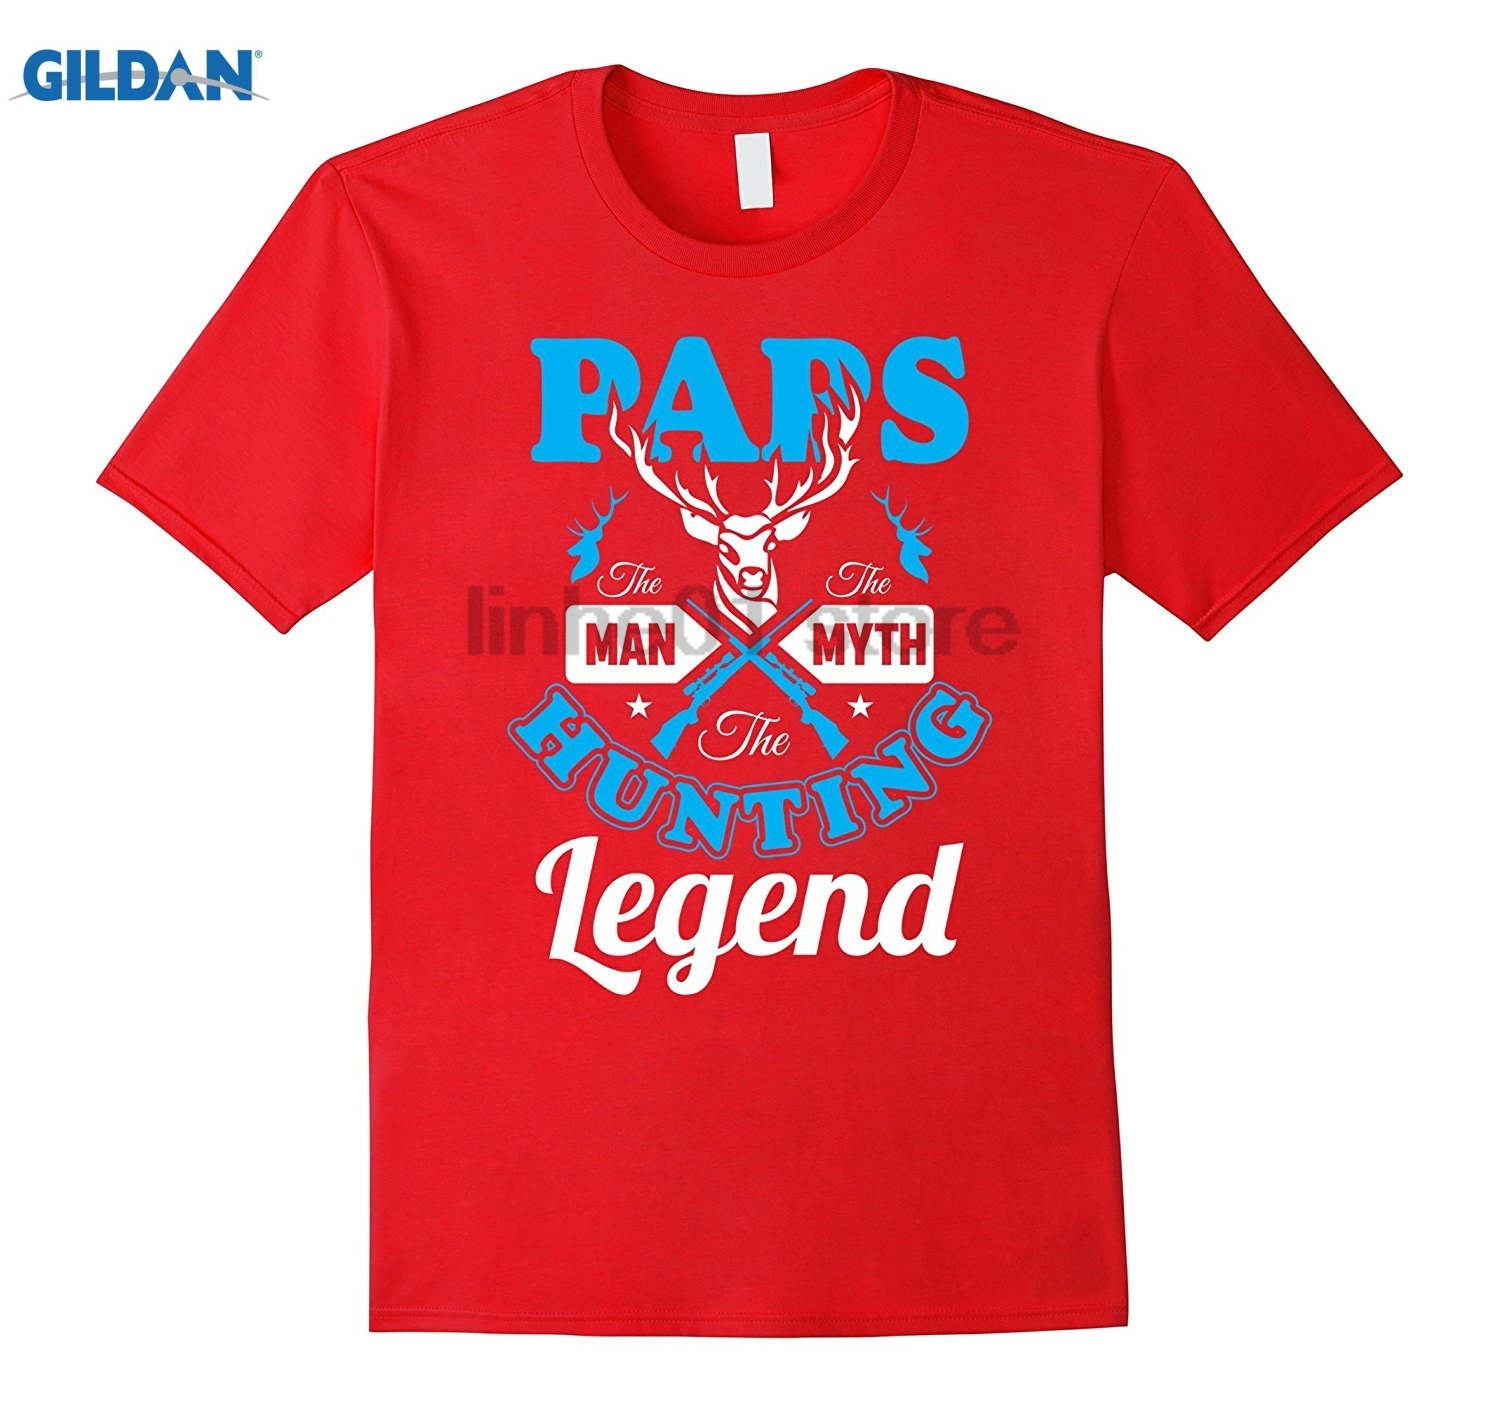 GILDAN Mens PAPS The Man The Myth The Legend T-Shirt glasses Womens T-shirt glasses Womens T-shirt